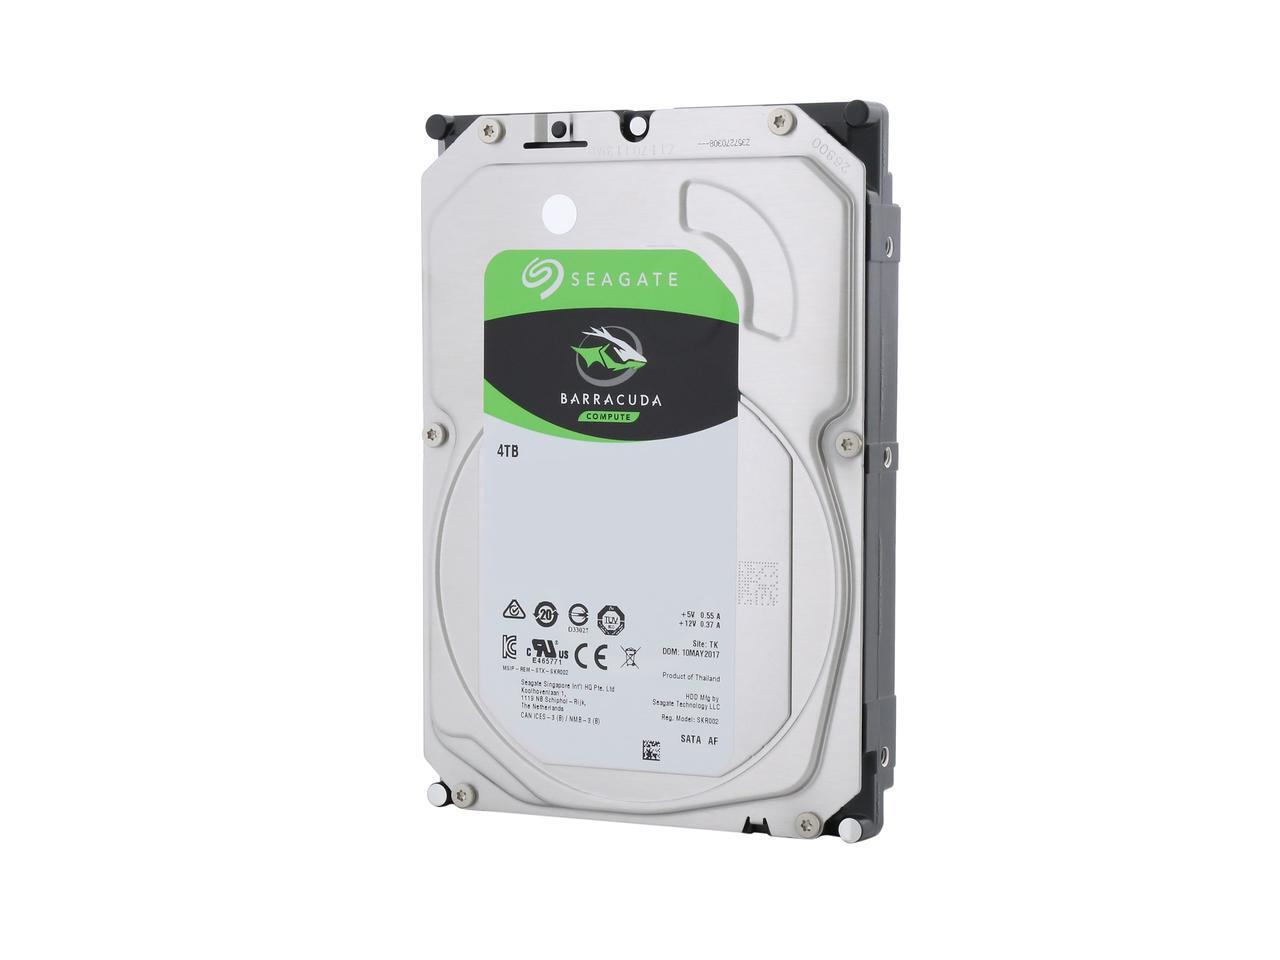 Хард диск SEAGATE BarraCuda, 4TB, 256MB, SATA 6.0Gb/s, ST4000DM004